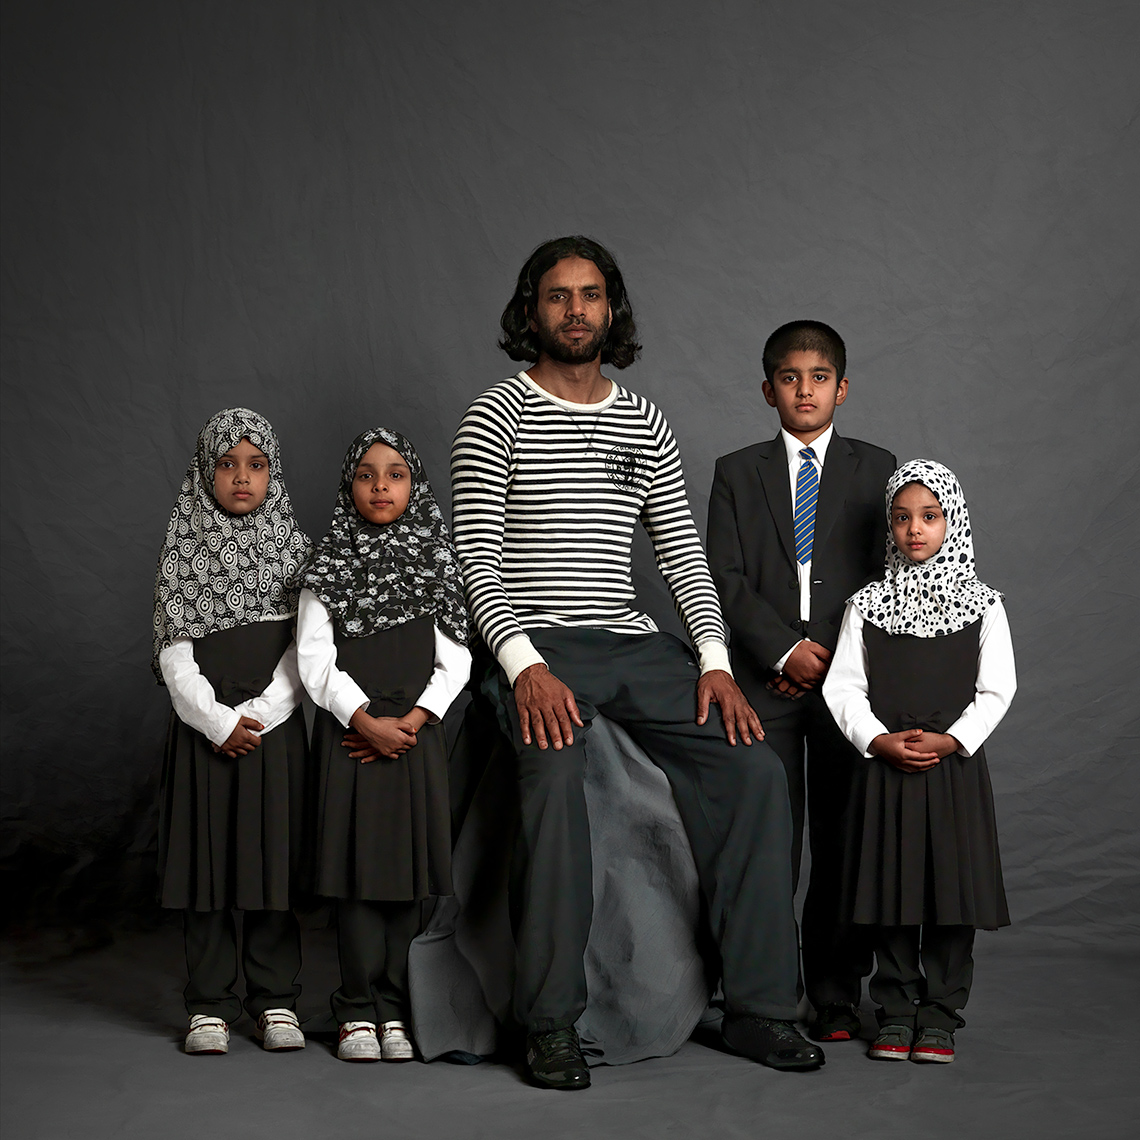 Ejaz-family-formal©Paul Hampton Photographer Glasgow